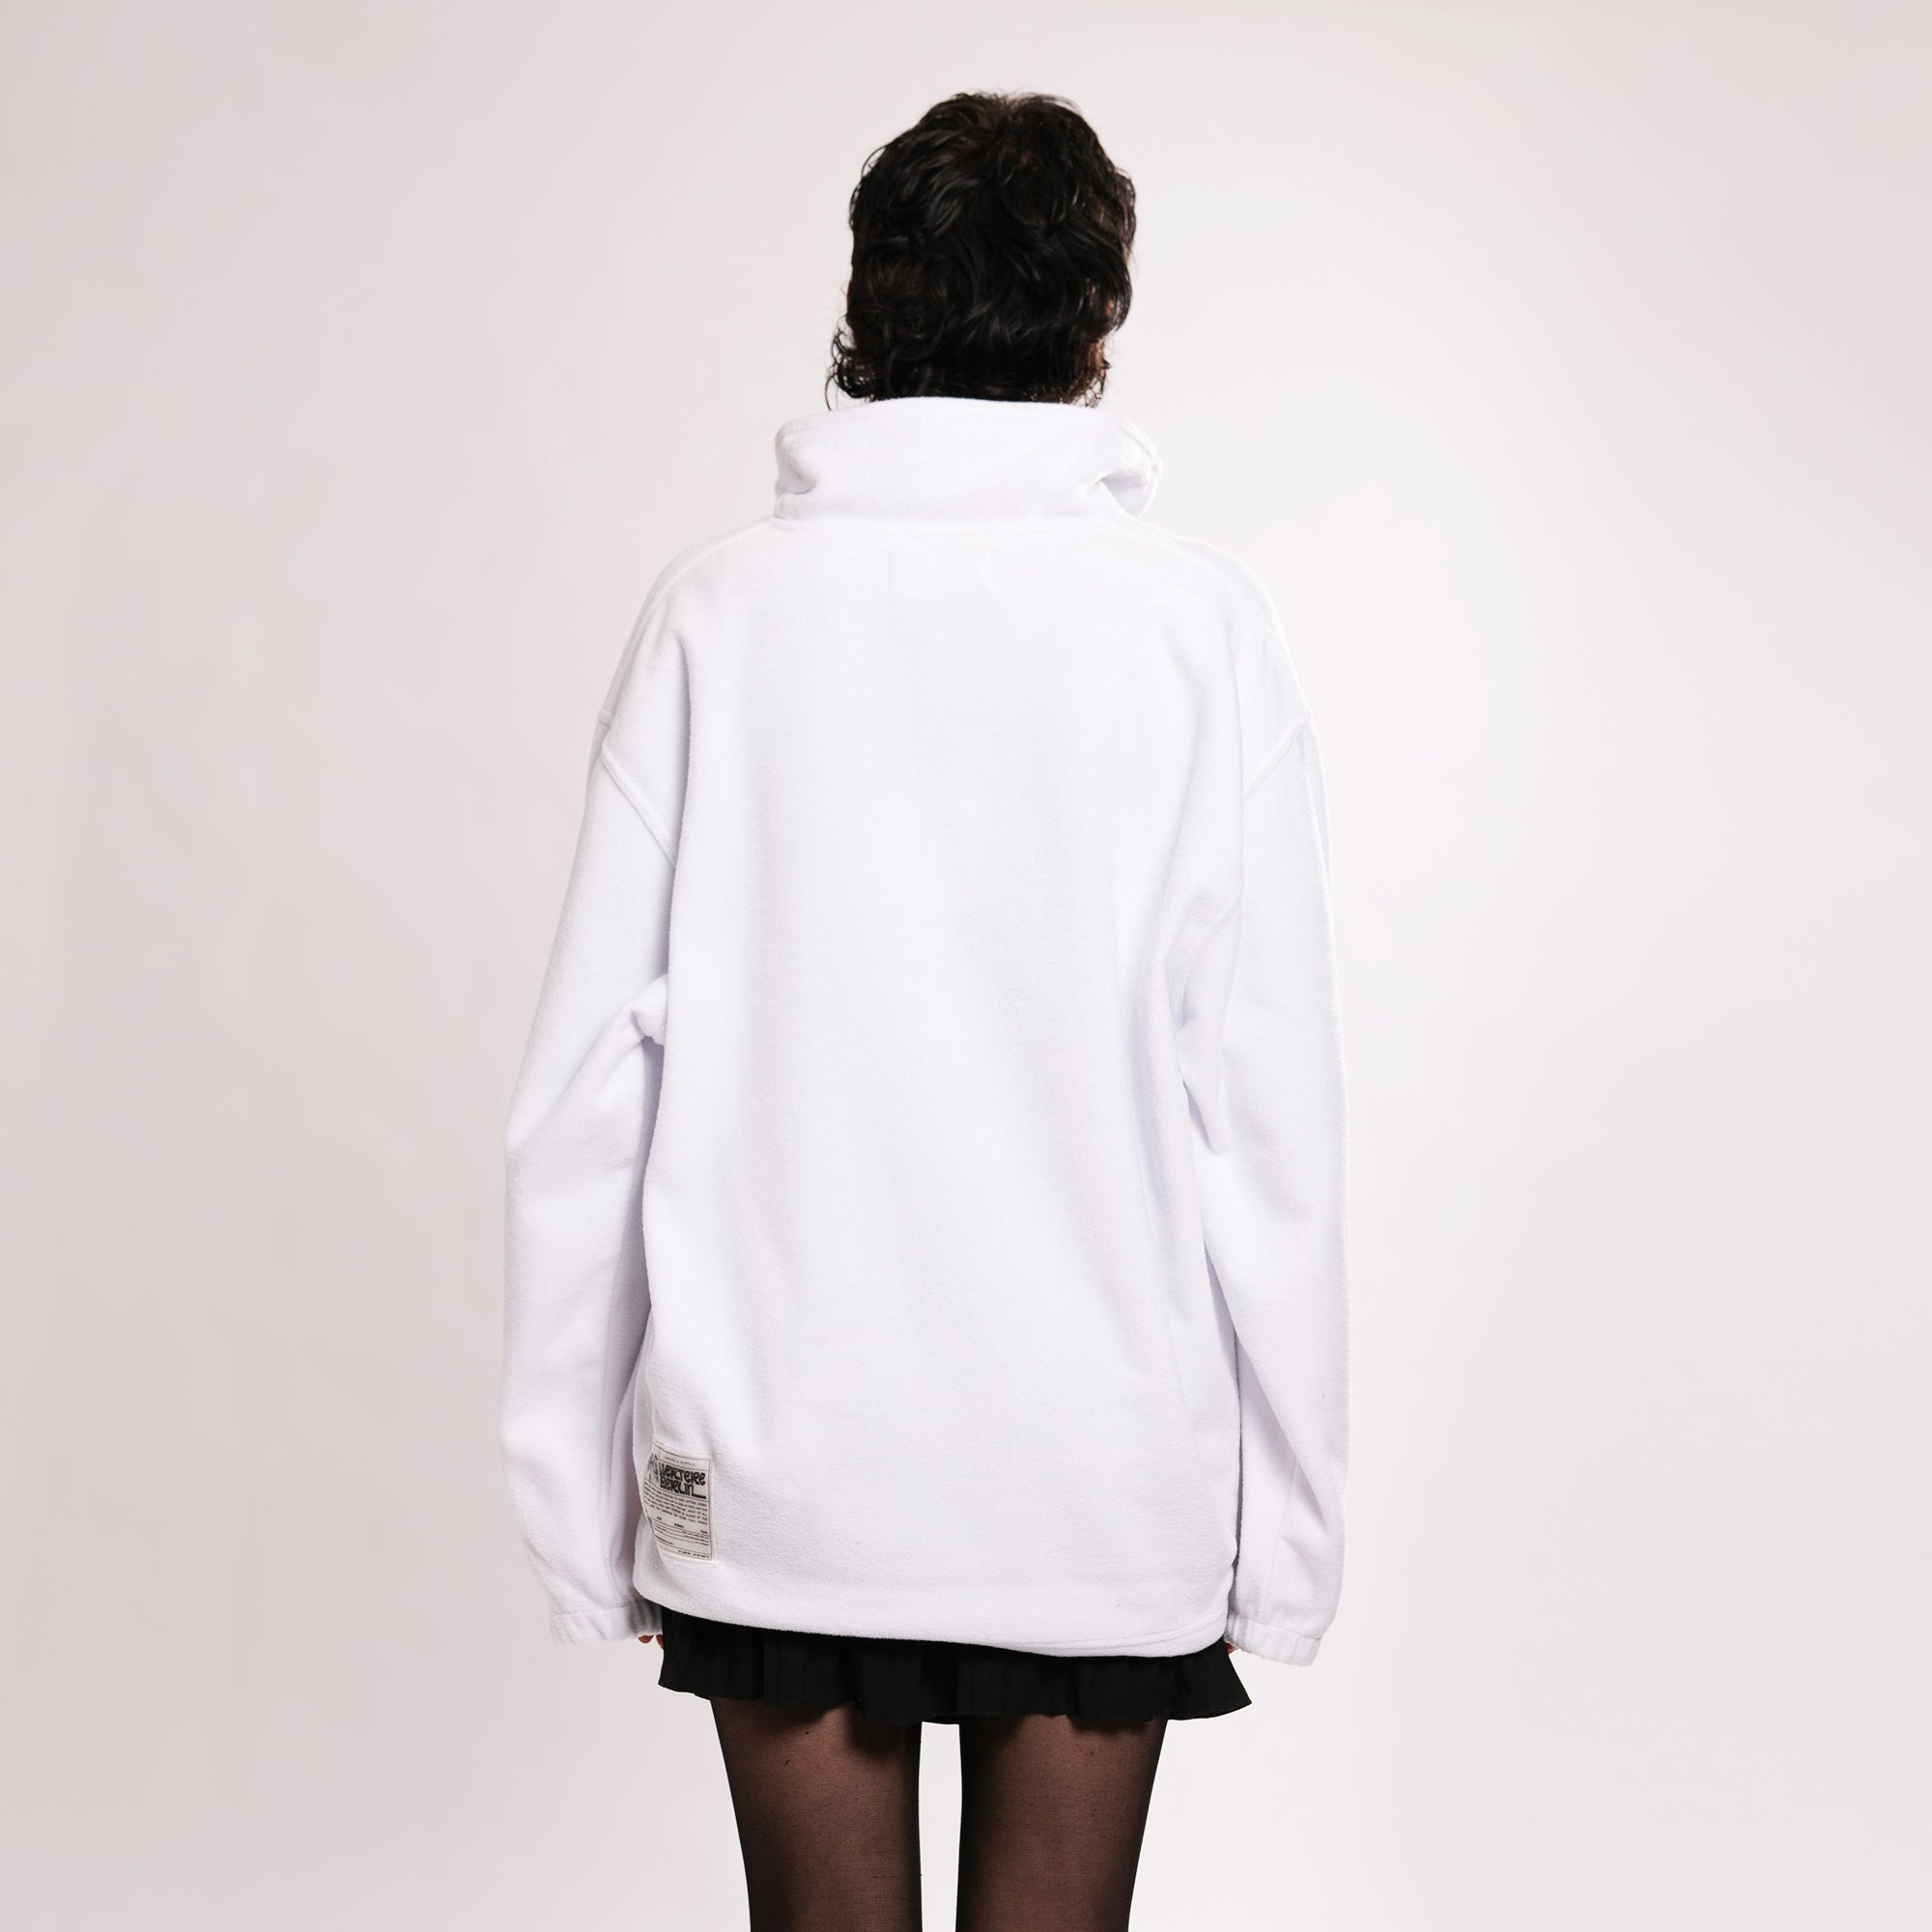 FLEECE ZIP SWEATER ACCELERATION - WHITE